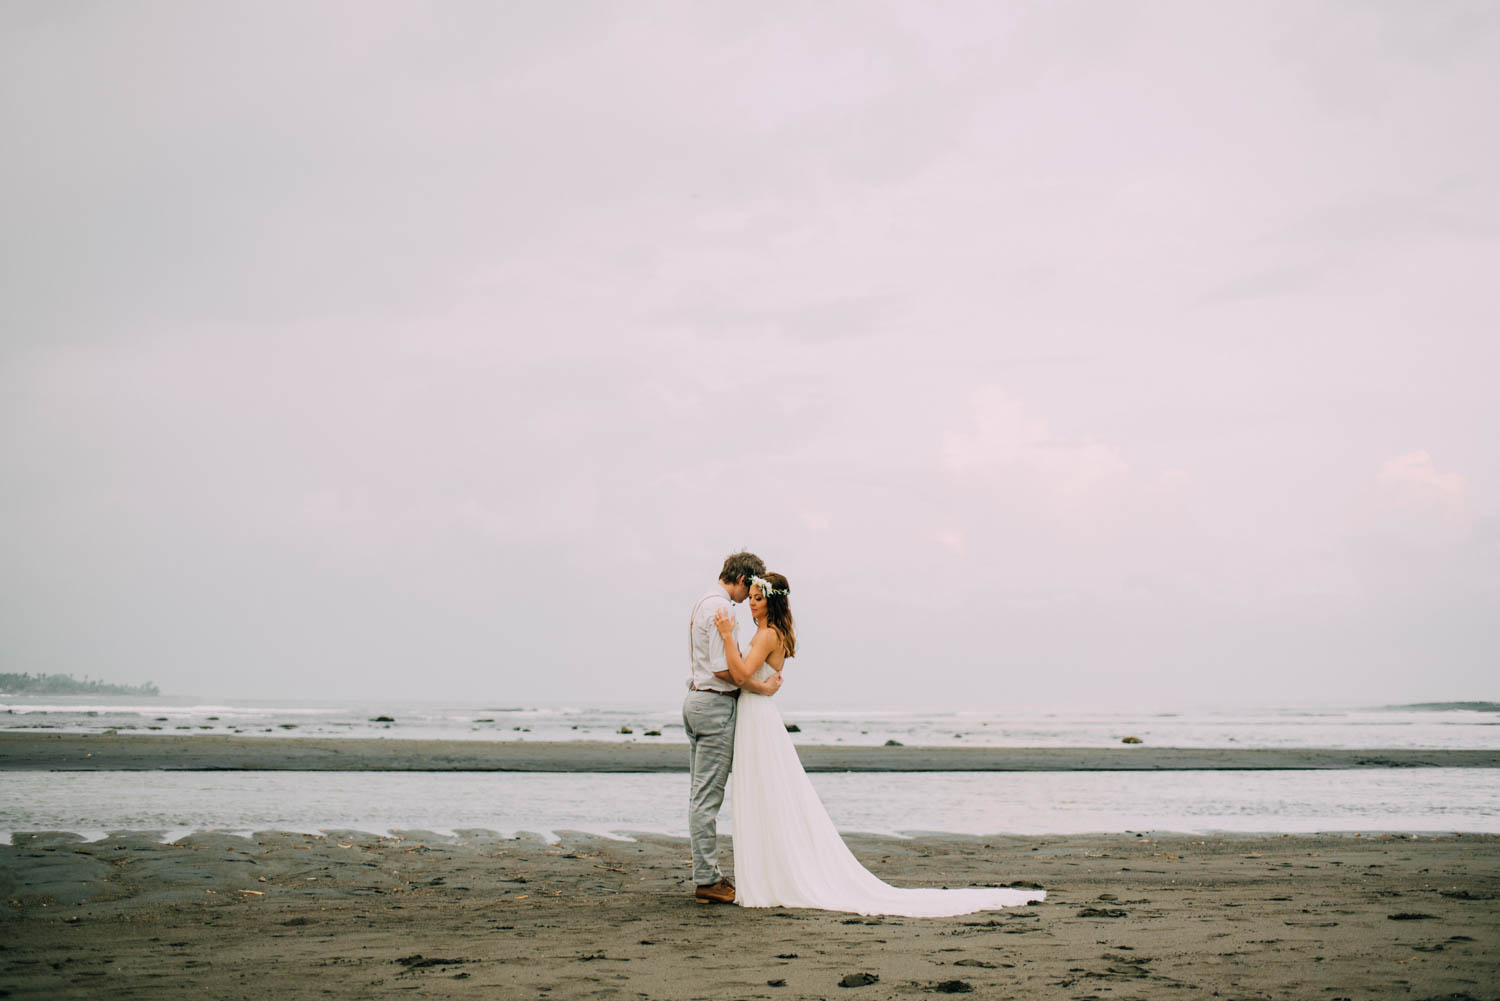 baliwedding-destination-diktatphotography-weddinginbali-baliweddingphotographer-villapusphapuri-85